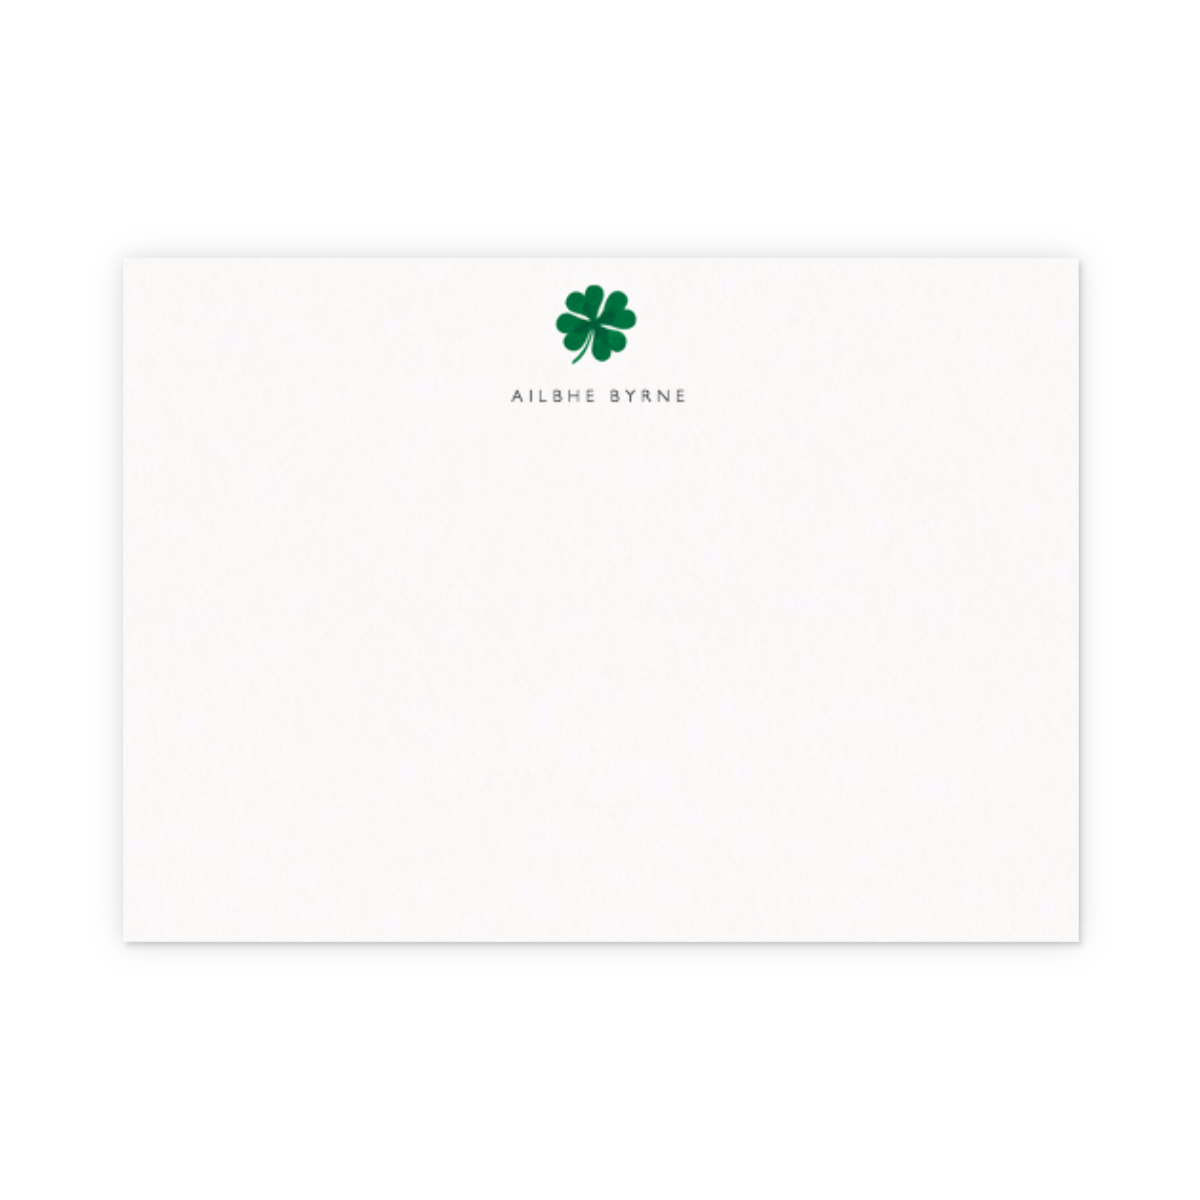 Https%3a%2f%2fwww.papier.com%2fproduct image%2f5114%2f10%2ffour leaf clover 1331 front 1458235741.png?ixlib=rb 1.1